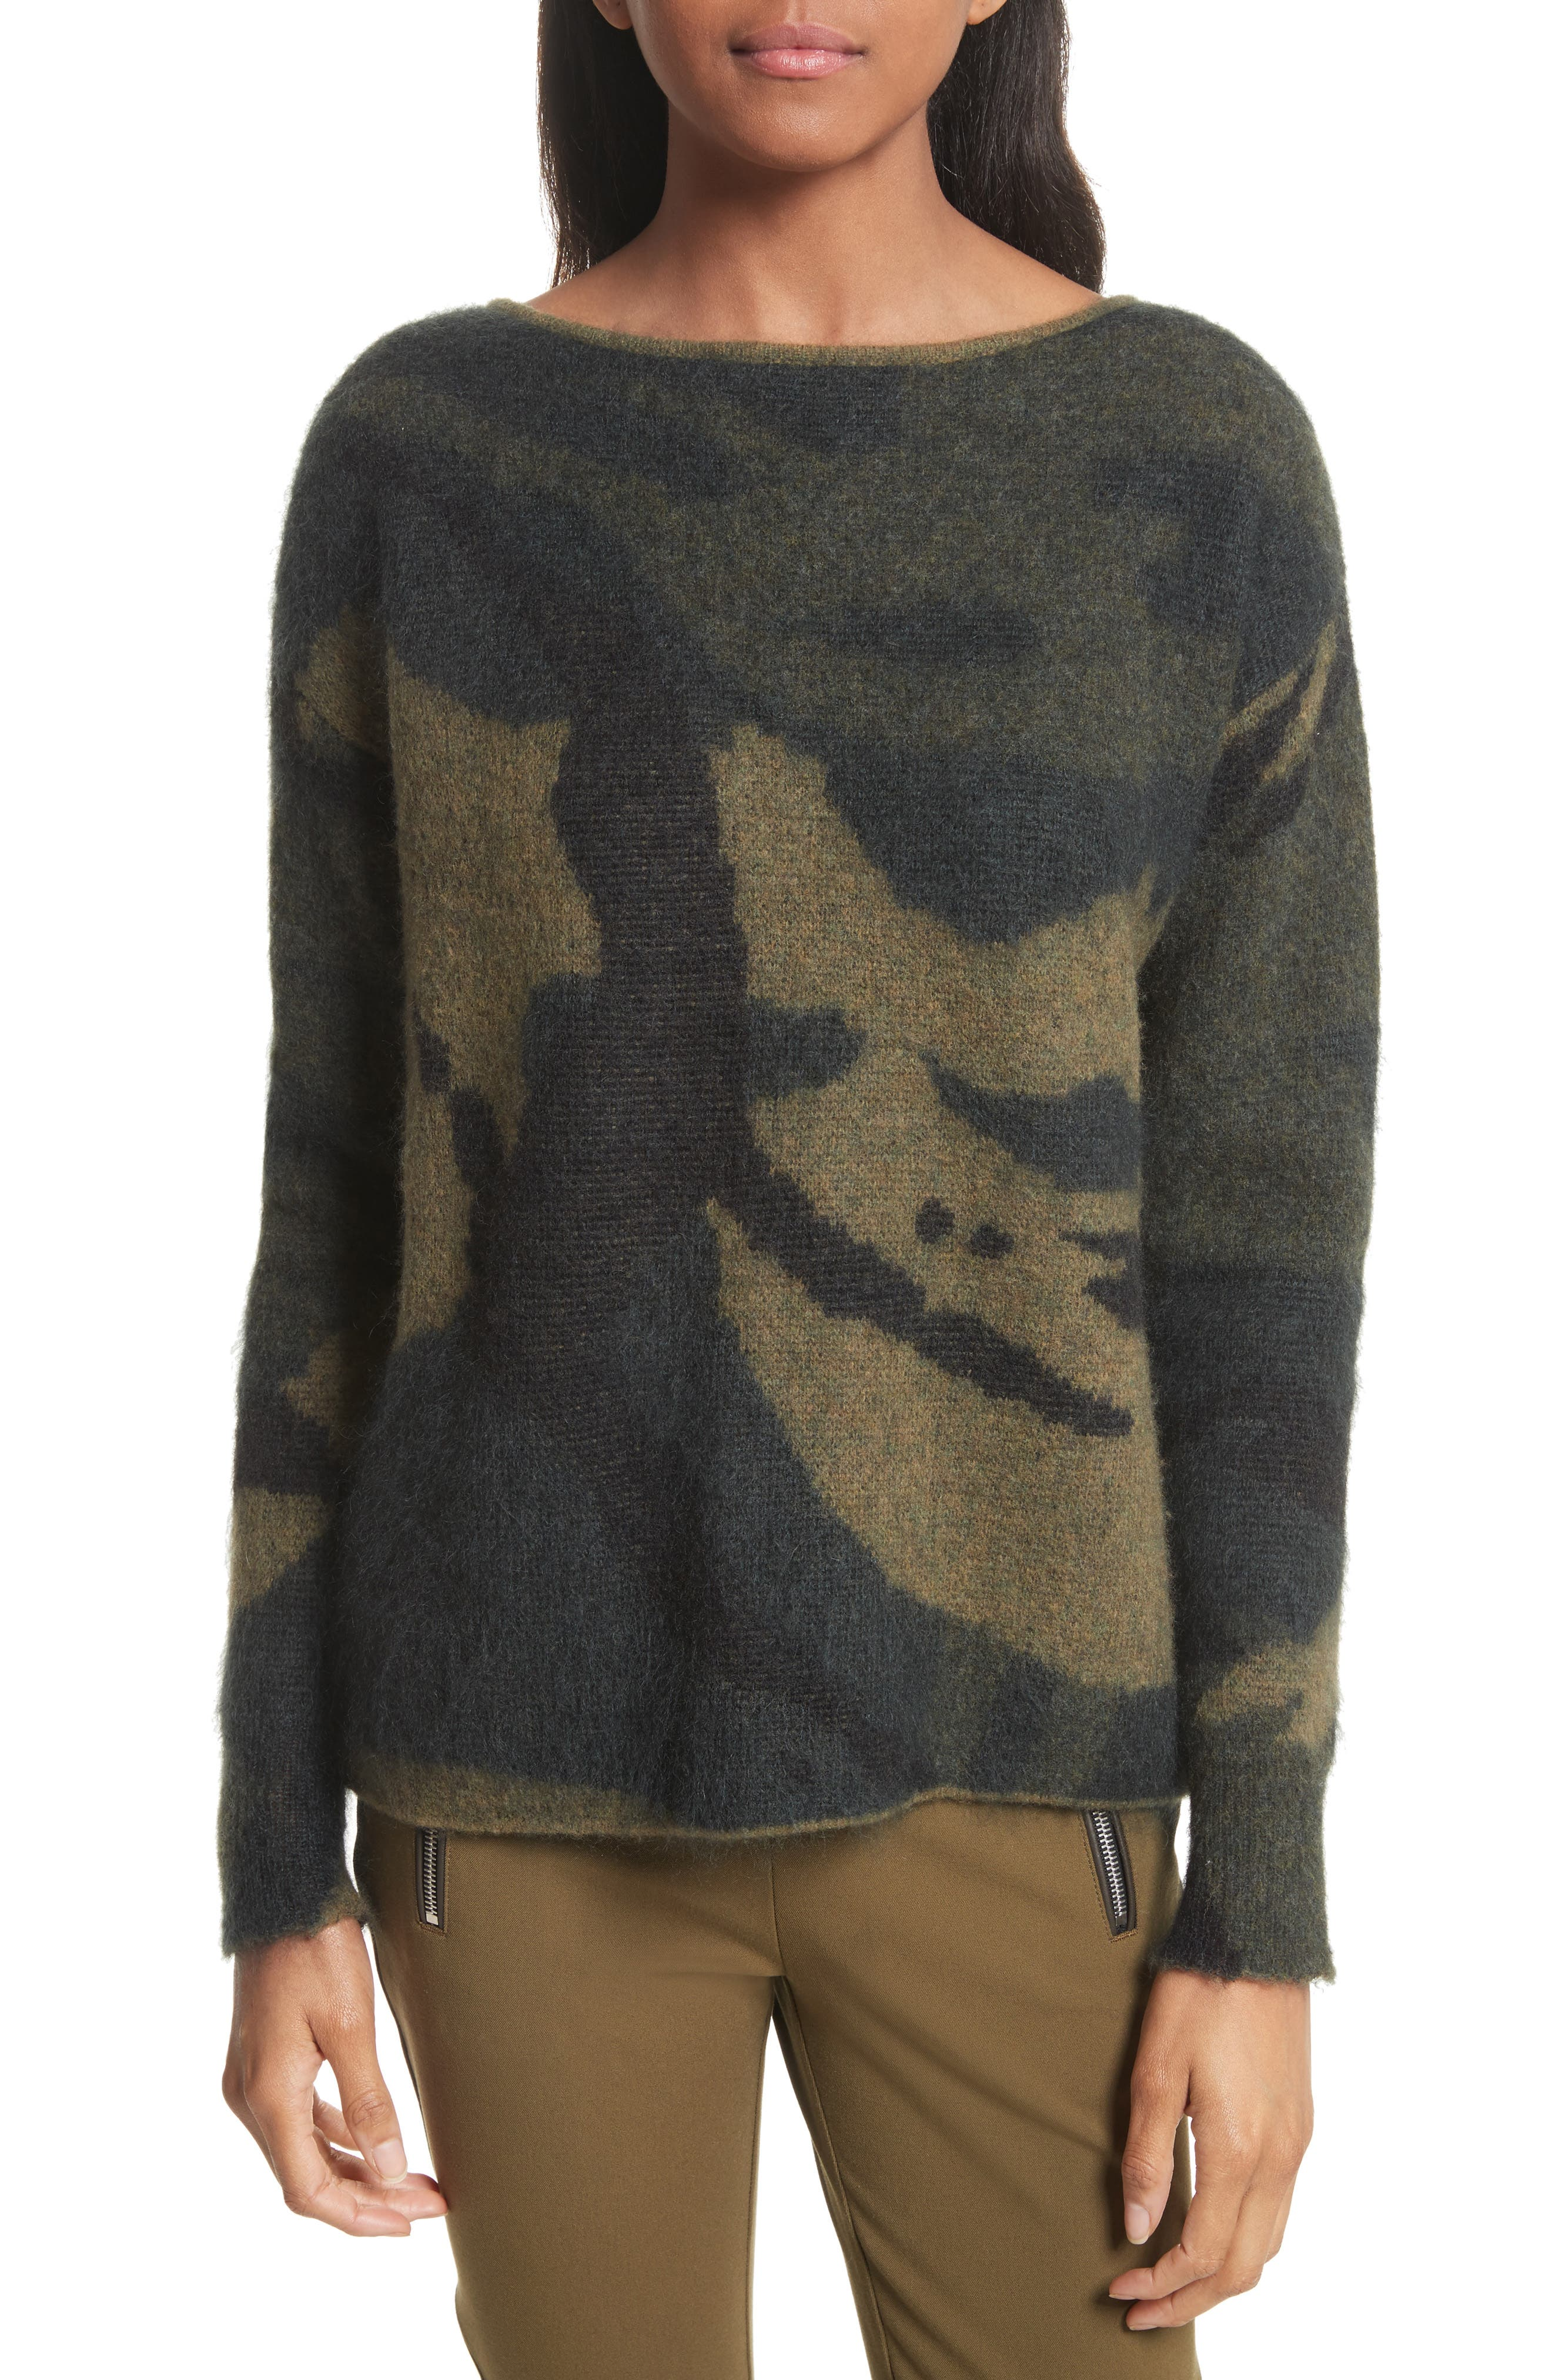 Sinclair Camouflage Jacquard Sweater,                             Main thumbnail 1, color,                             319